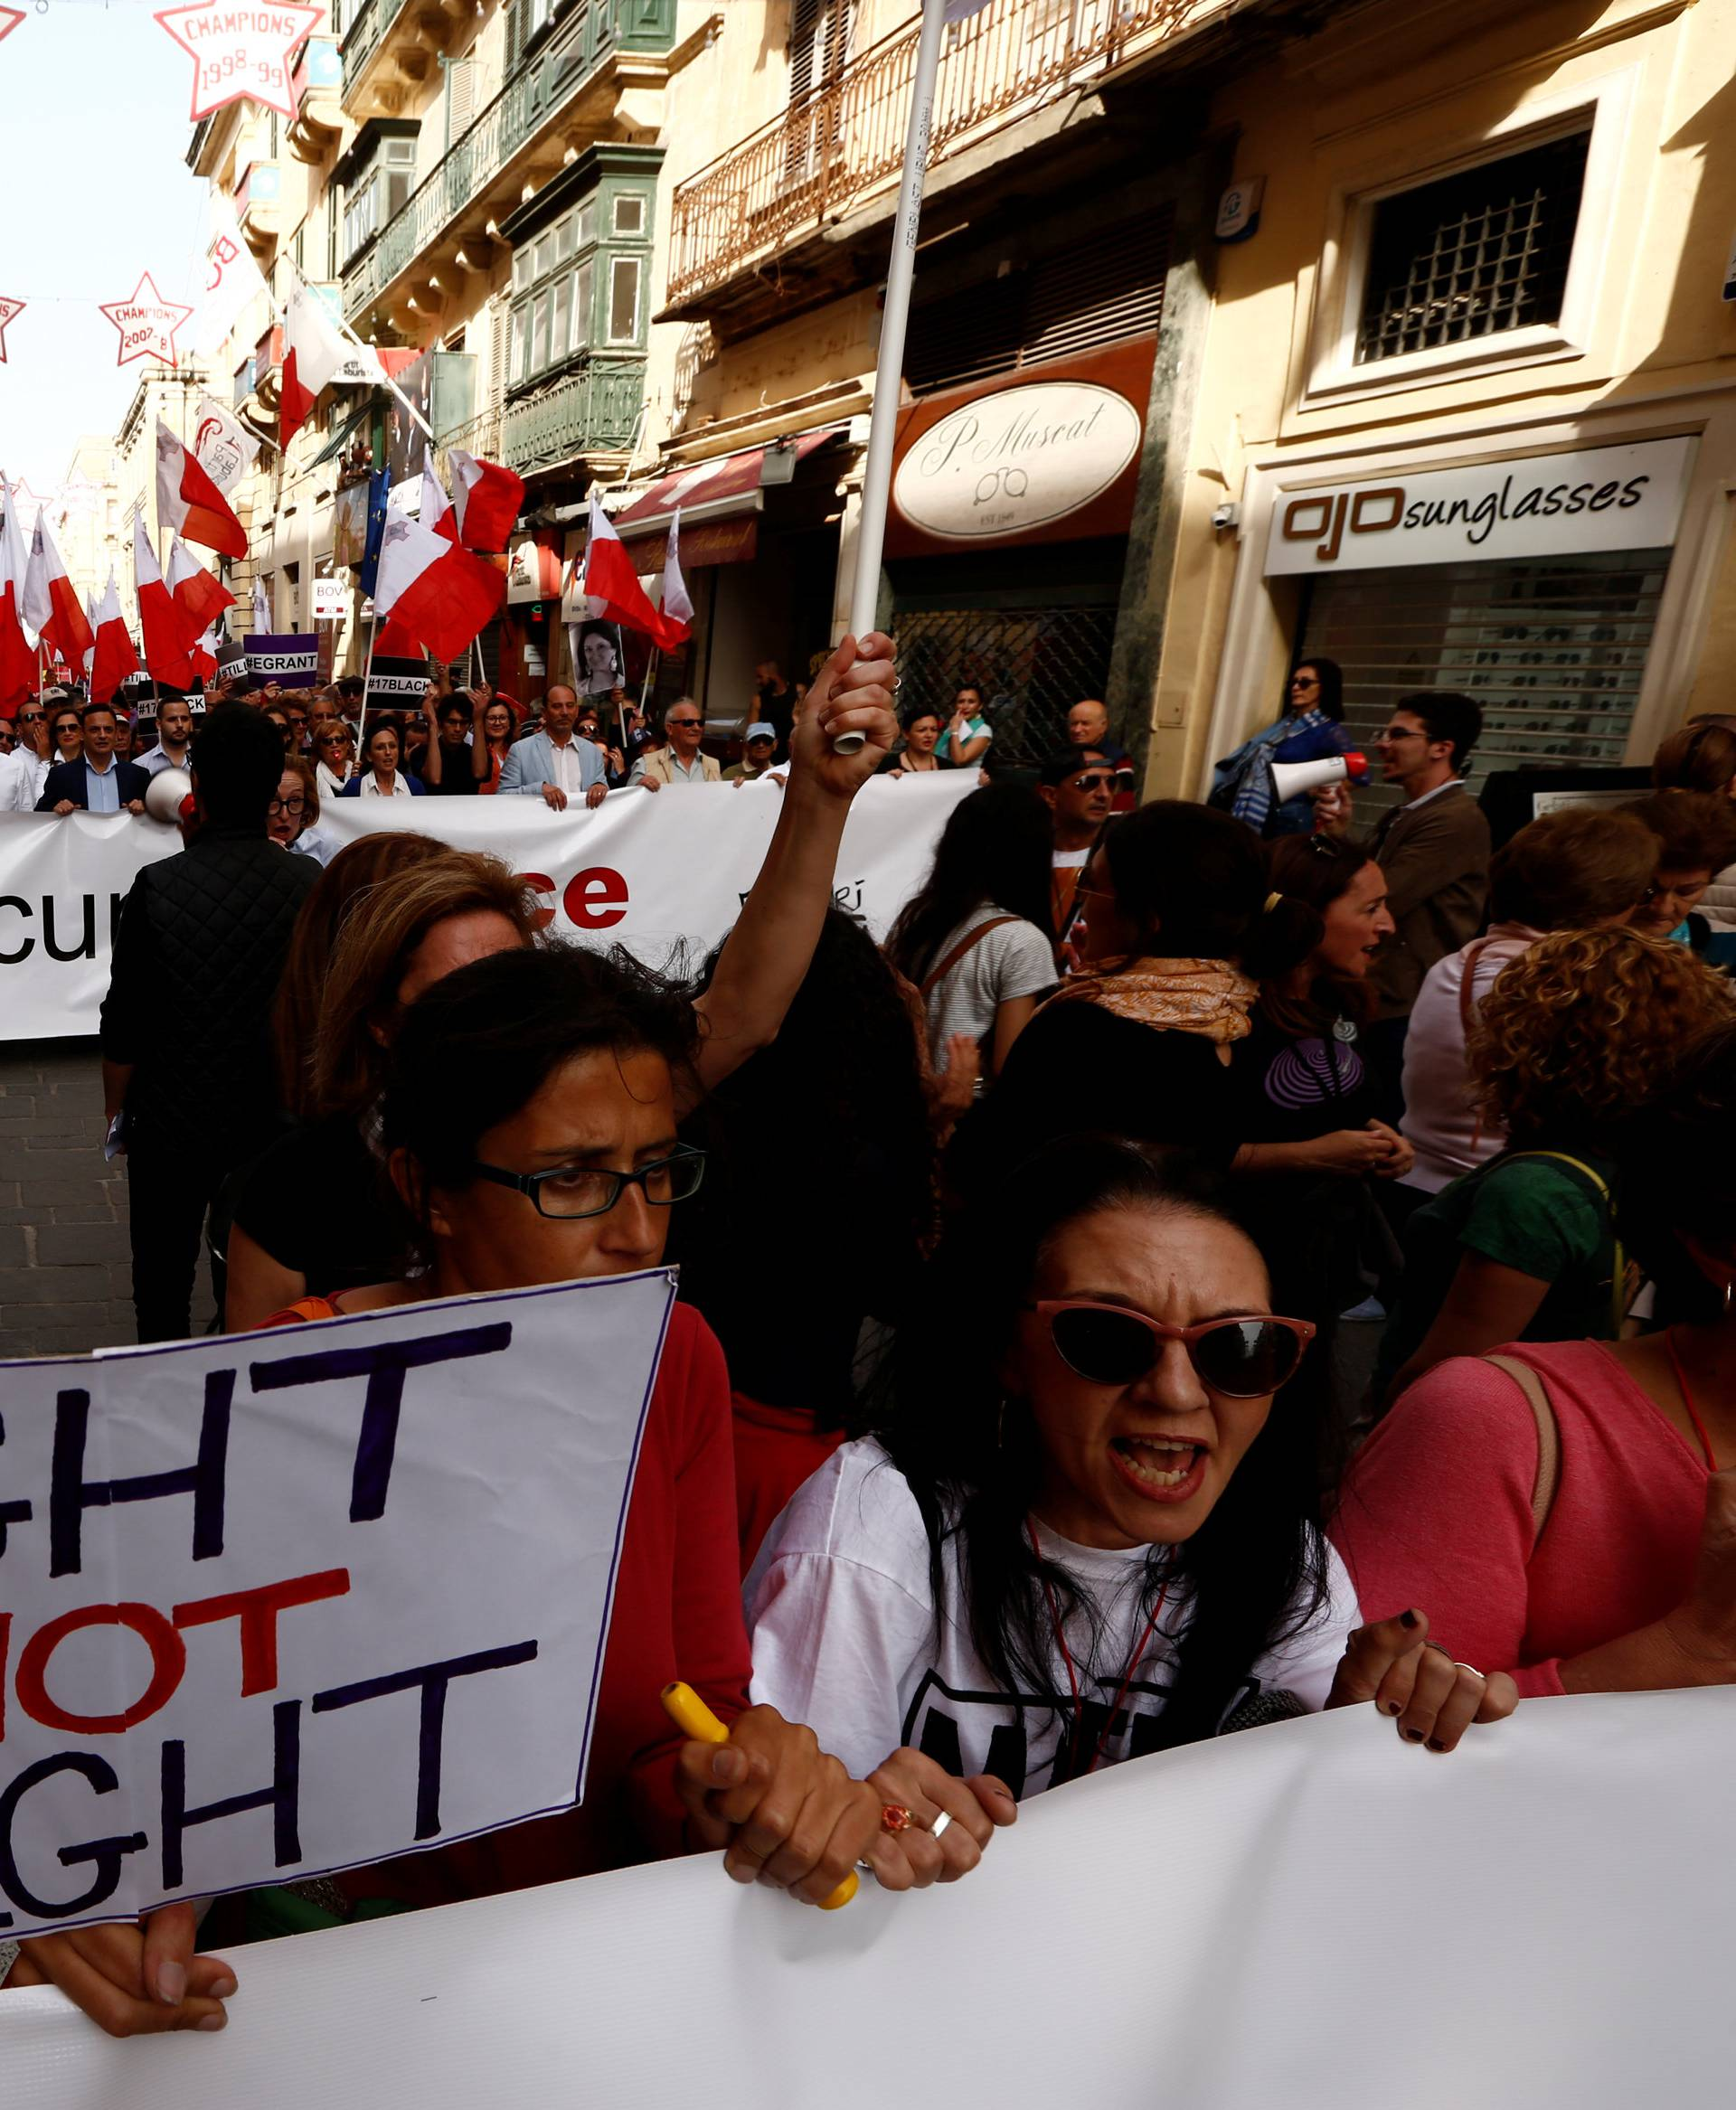 People shout slogans during a protest against government corruption in light of the revelations in the Daphne Project, in Valletta